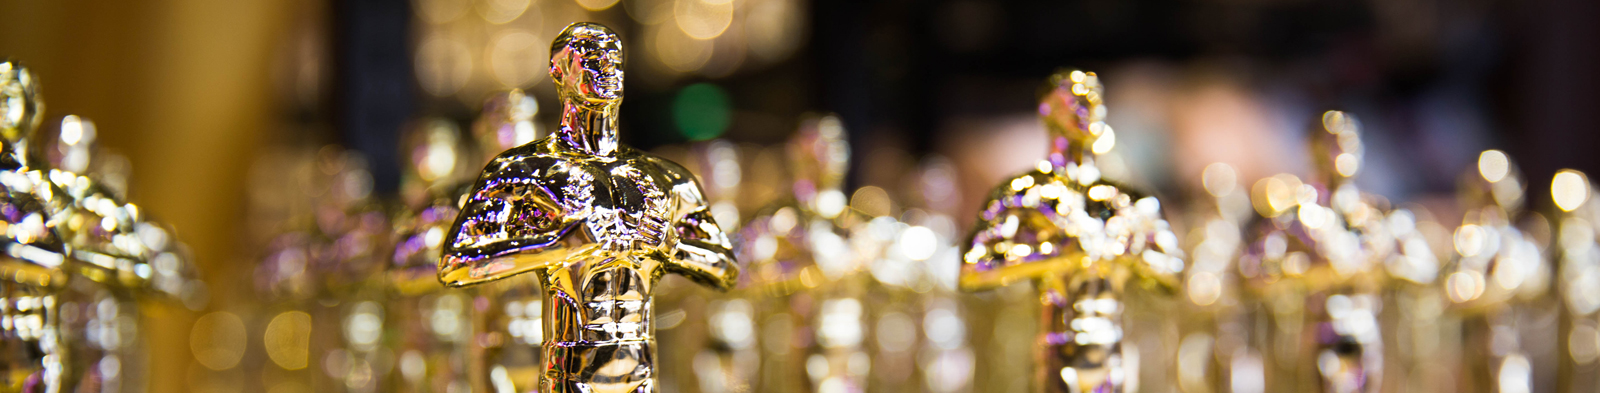 A line up of shining gold Oscars award statues.